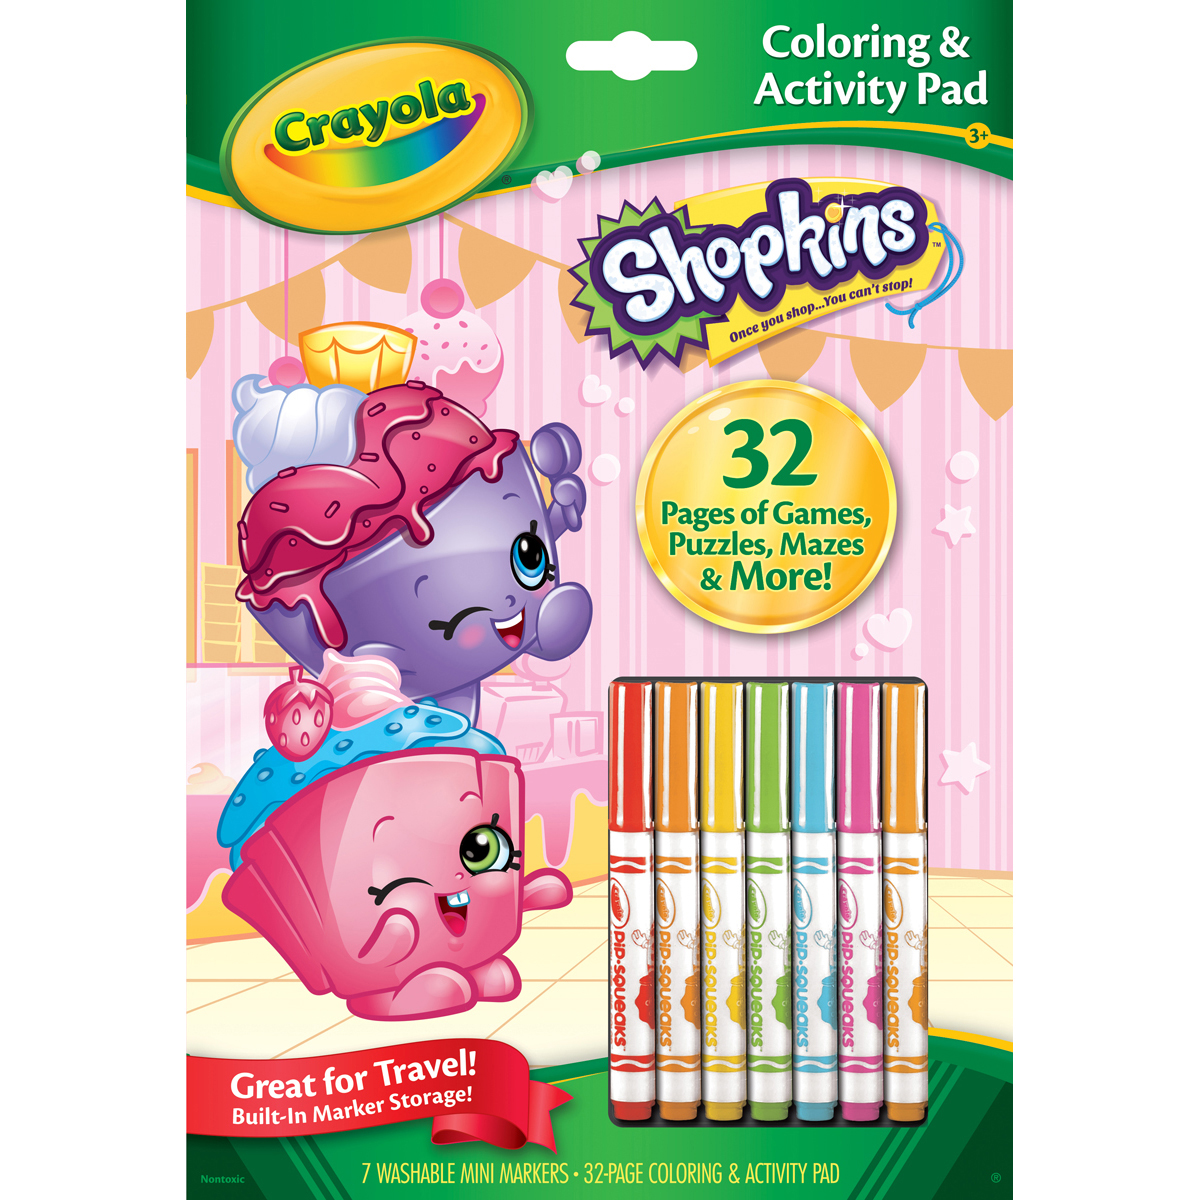 Crayola Coloring & Activity Pad W MarkersShopkins by Crayola